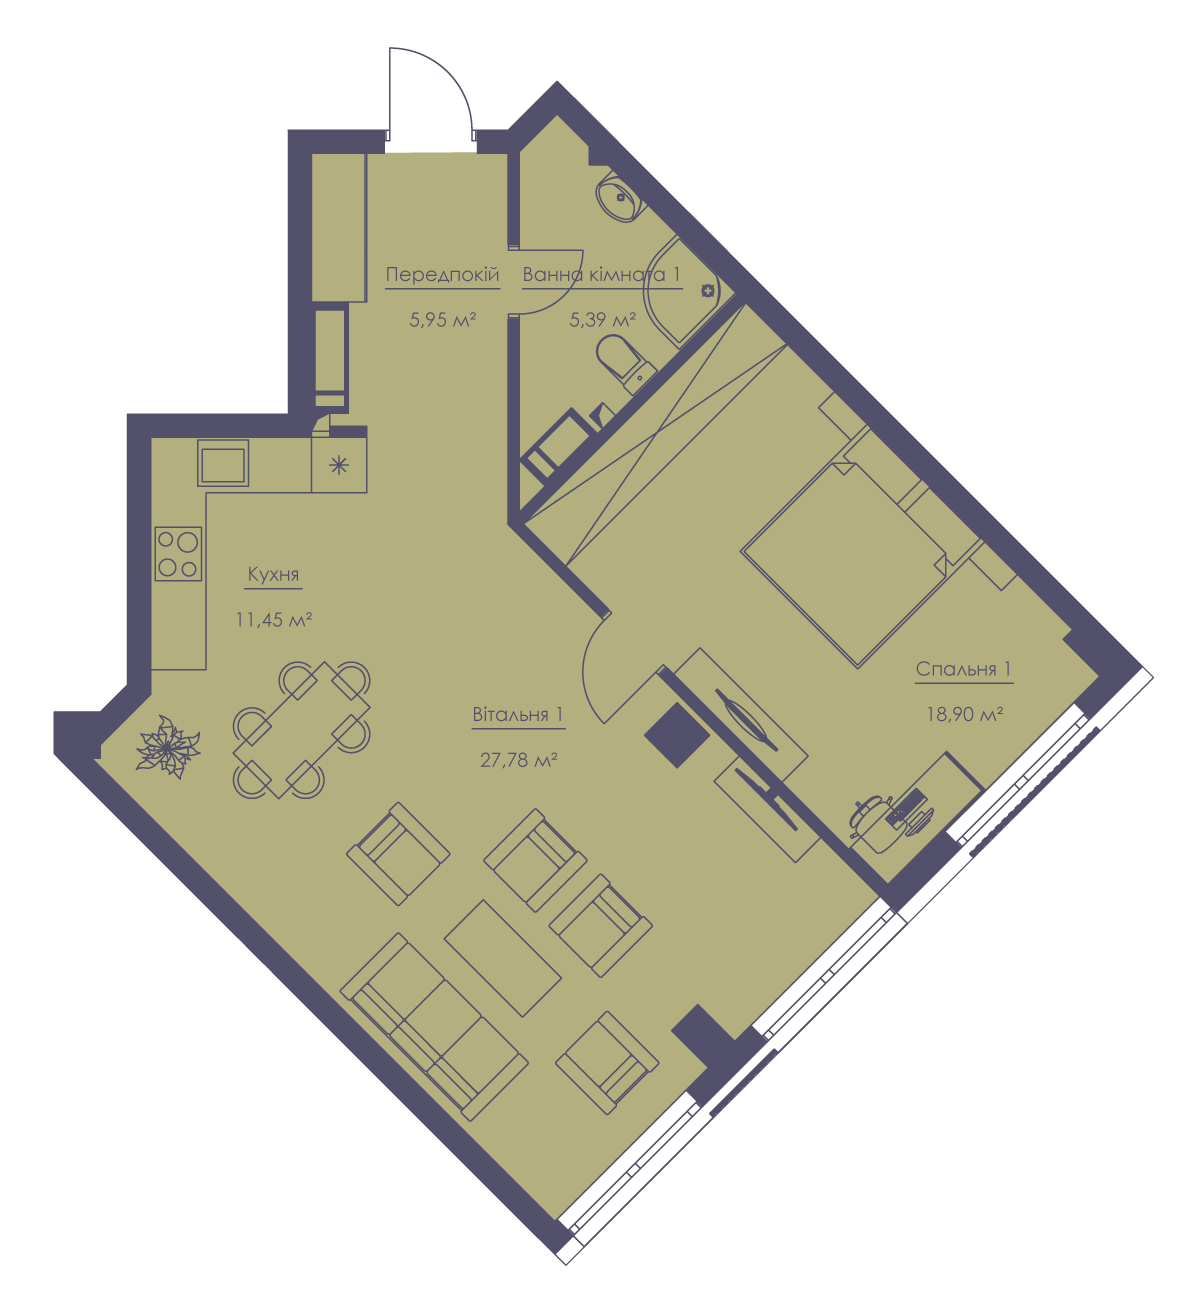 Apartment layout KV_146_3.2a_1_1_1-1